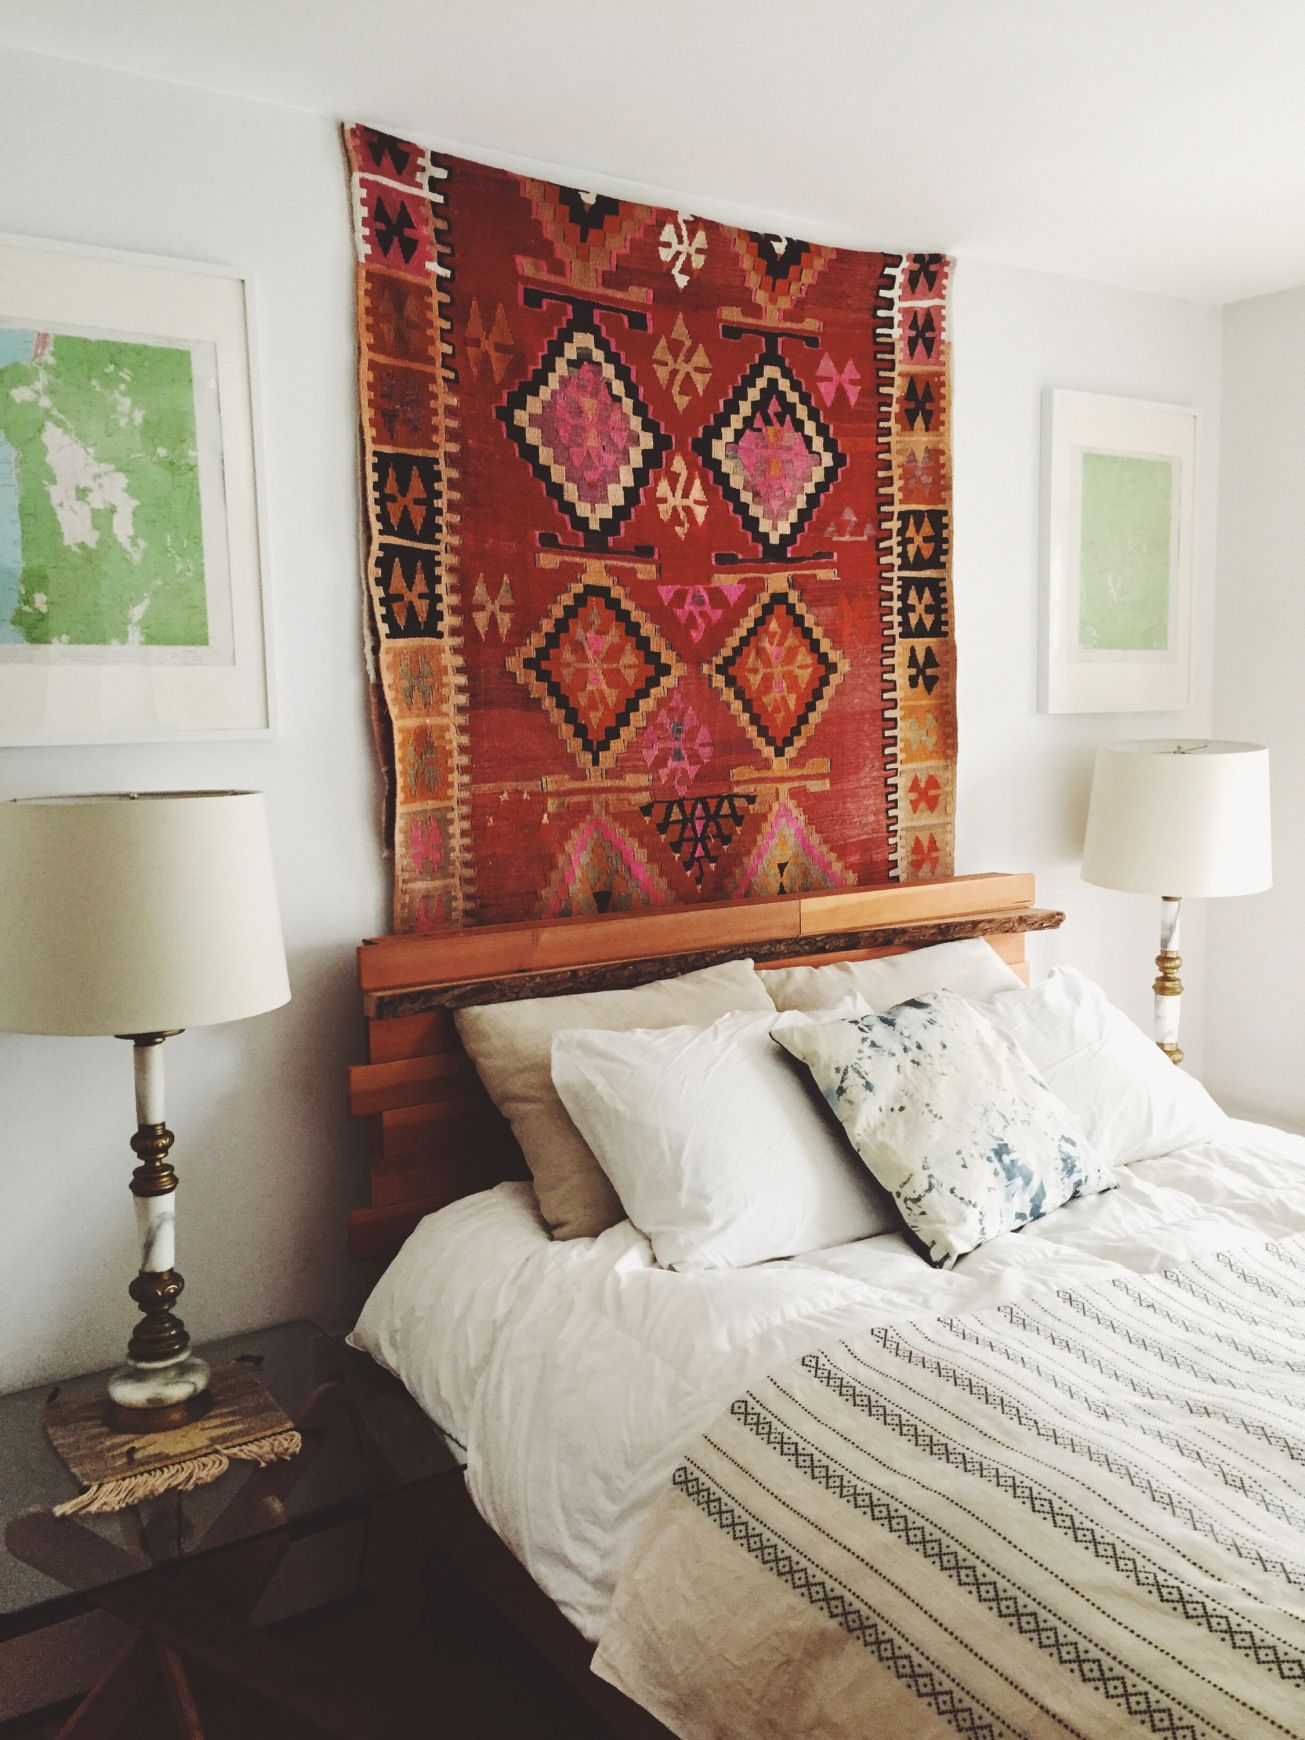 Kilim Rugs Add Contrast And Definition To The Es With Their Beautiful Unique Pattern Bright Color Kilimrug Homedecor